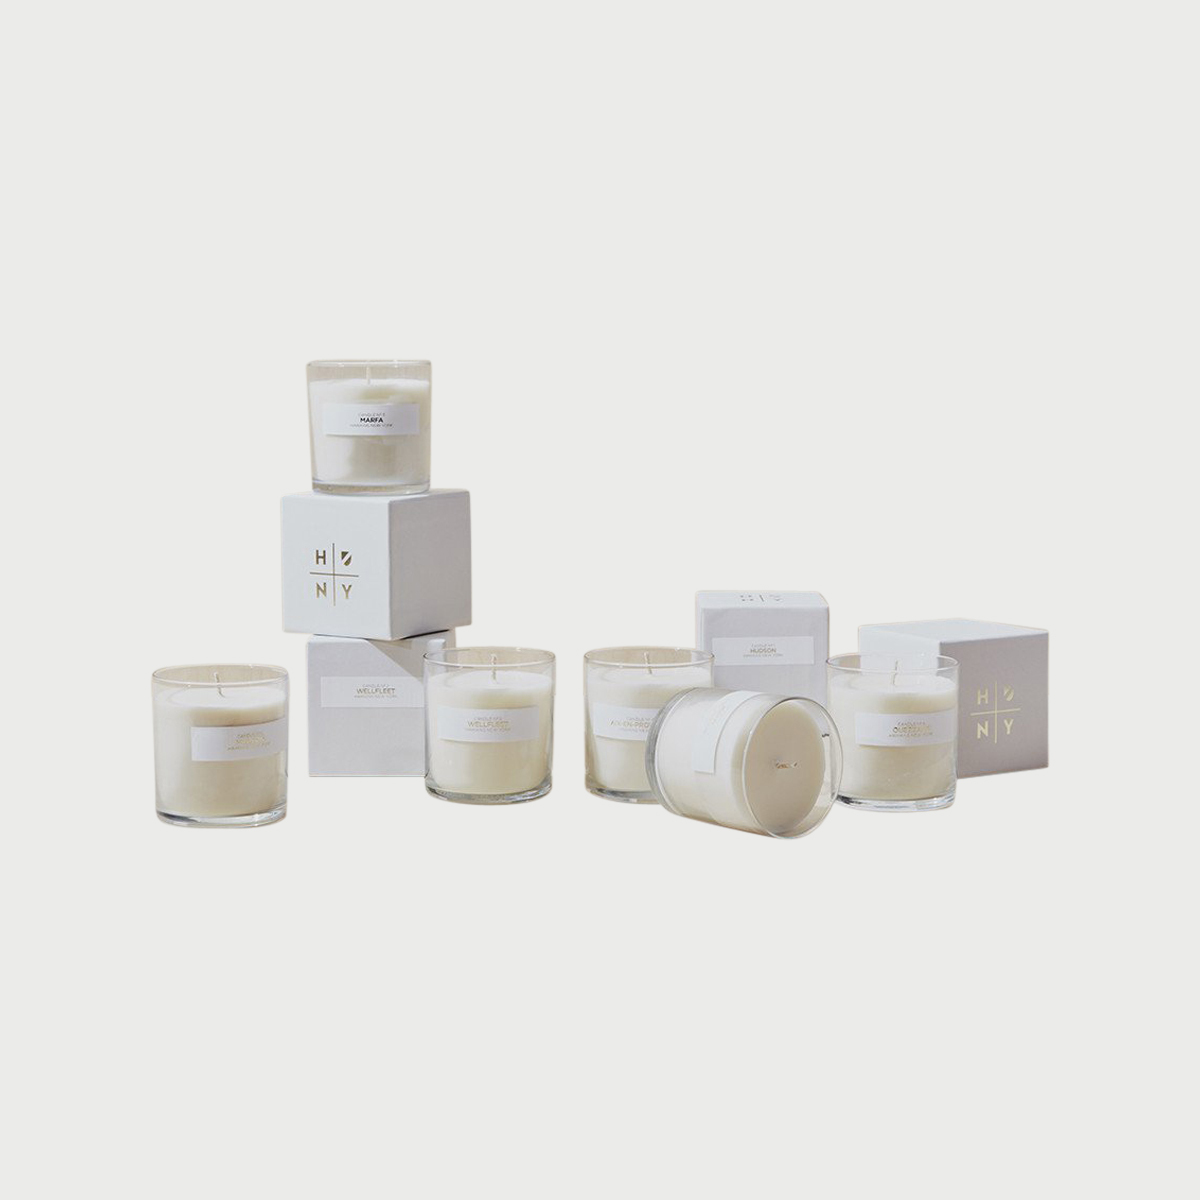 Hawkins scent candles 1